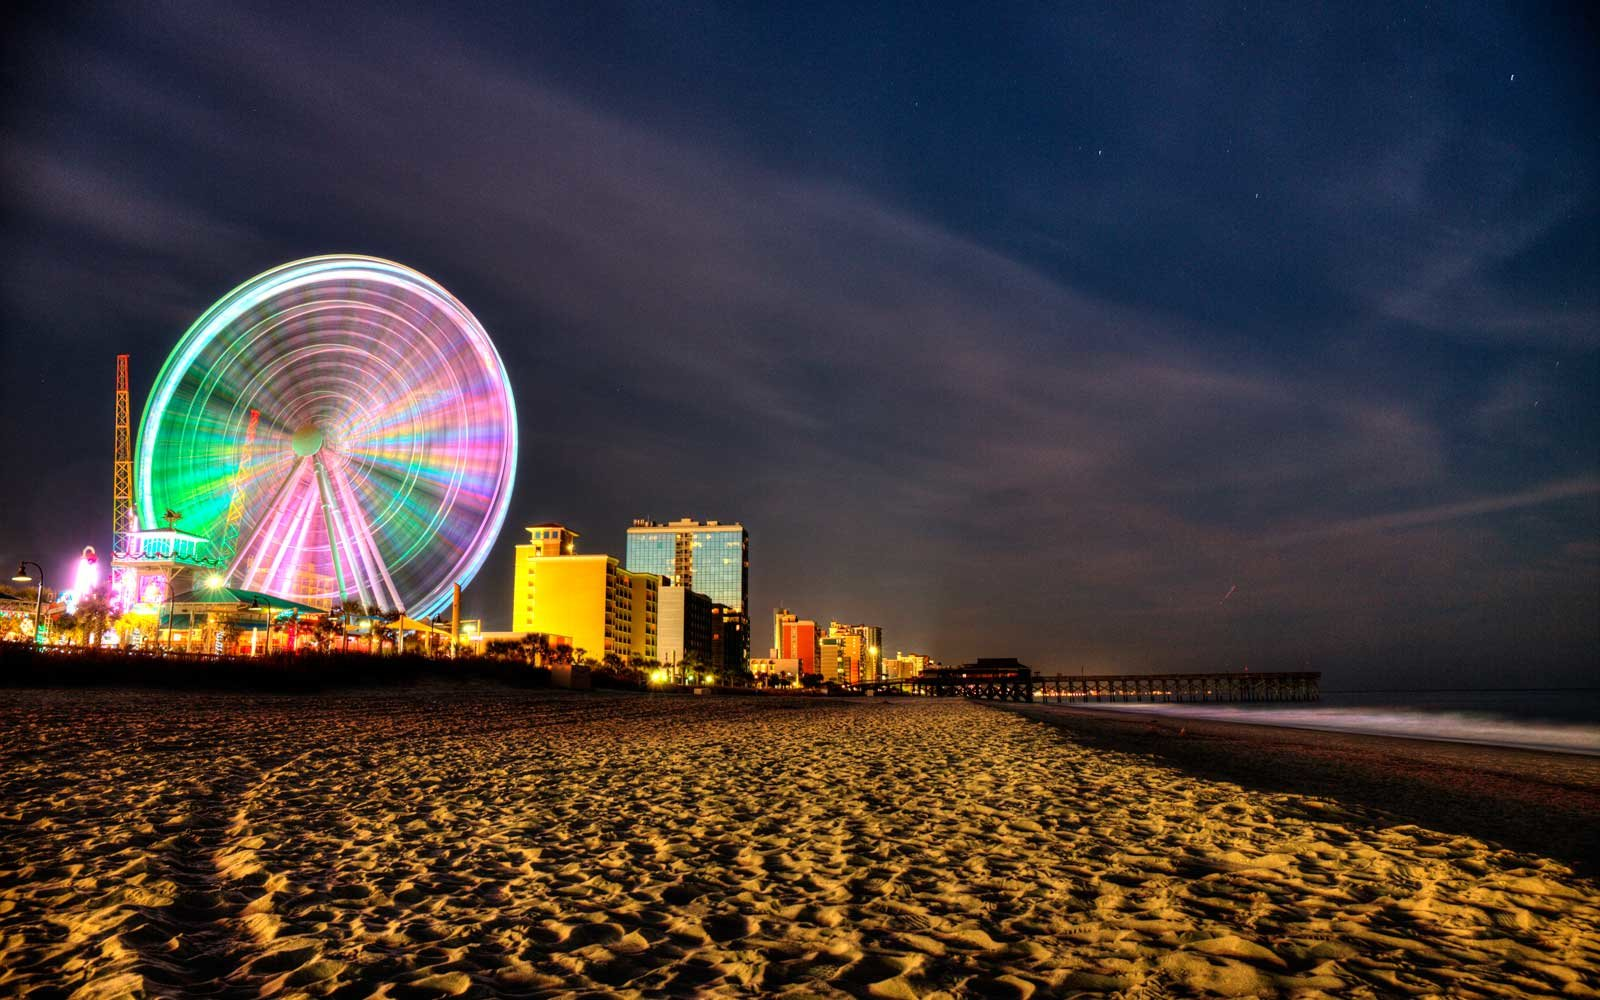 Myrtle Beach boardwalk and ferris wheel lit up at night.